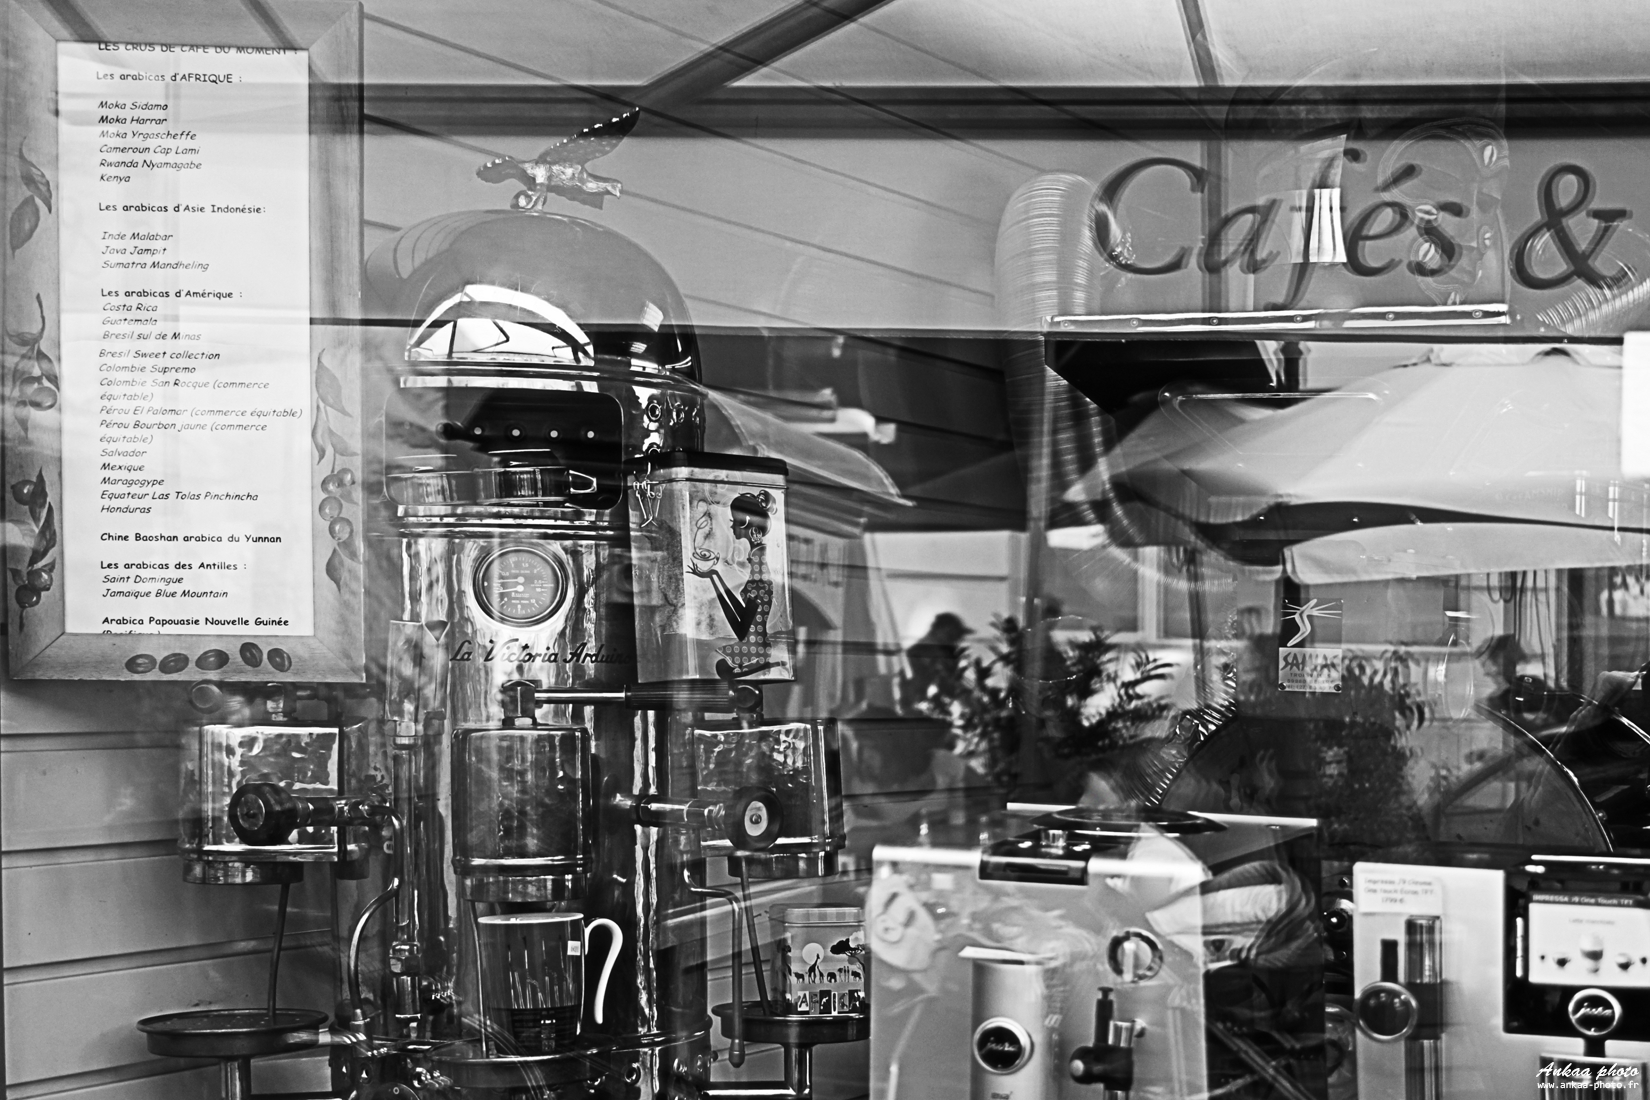 ankaa, photo, lisa, vizzini, photo, image, fond, ecran, hd, paysages, landscapes, art, photoshop, canon, nikon, reflet, noir, blanc, black, white, café, street,